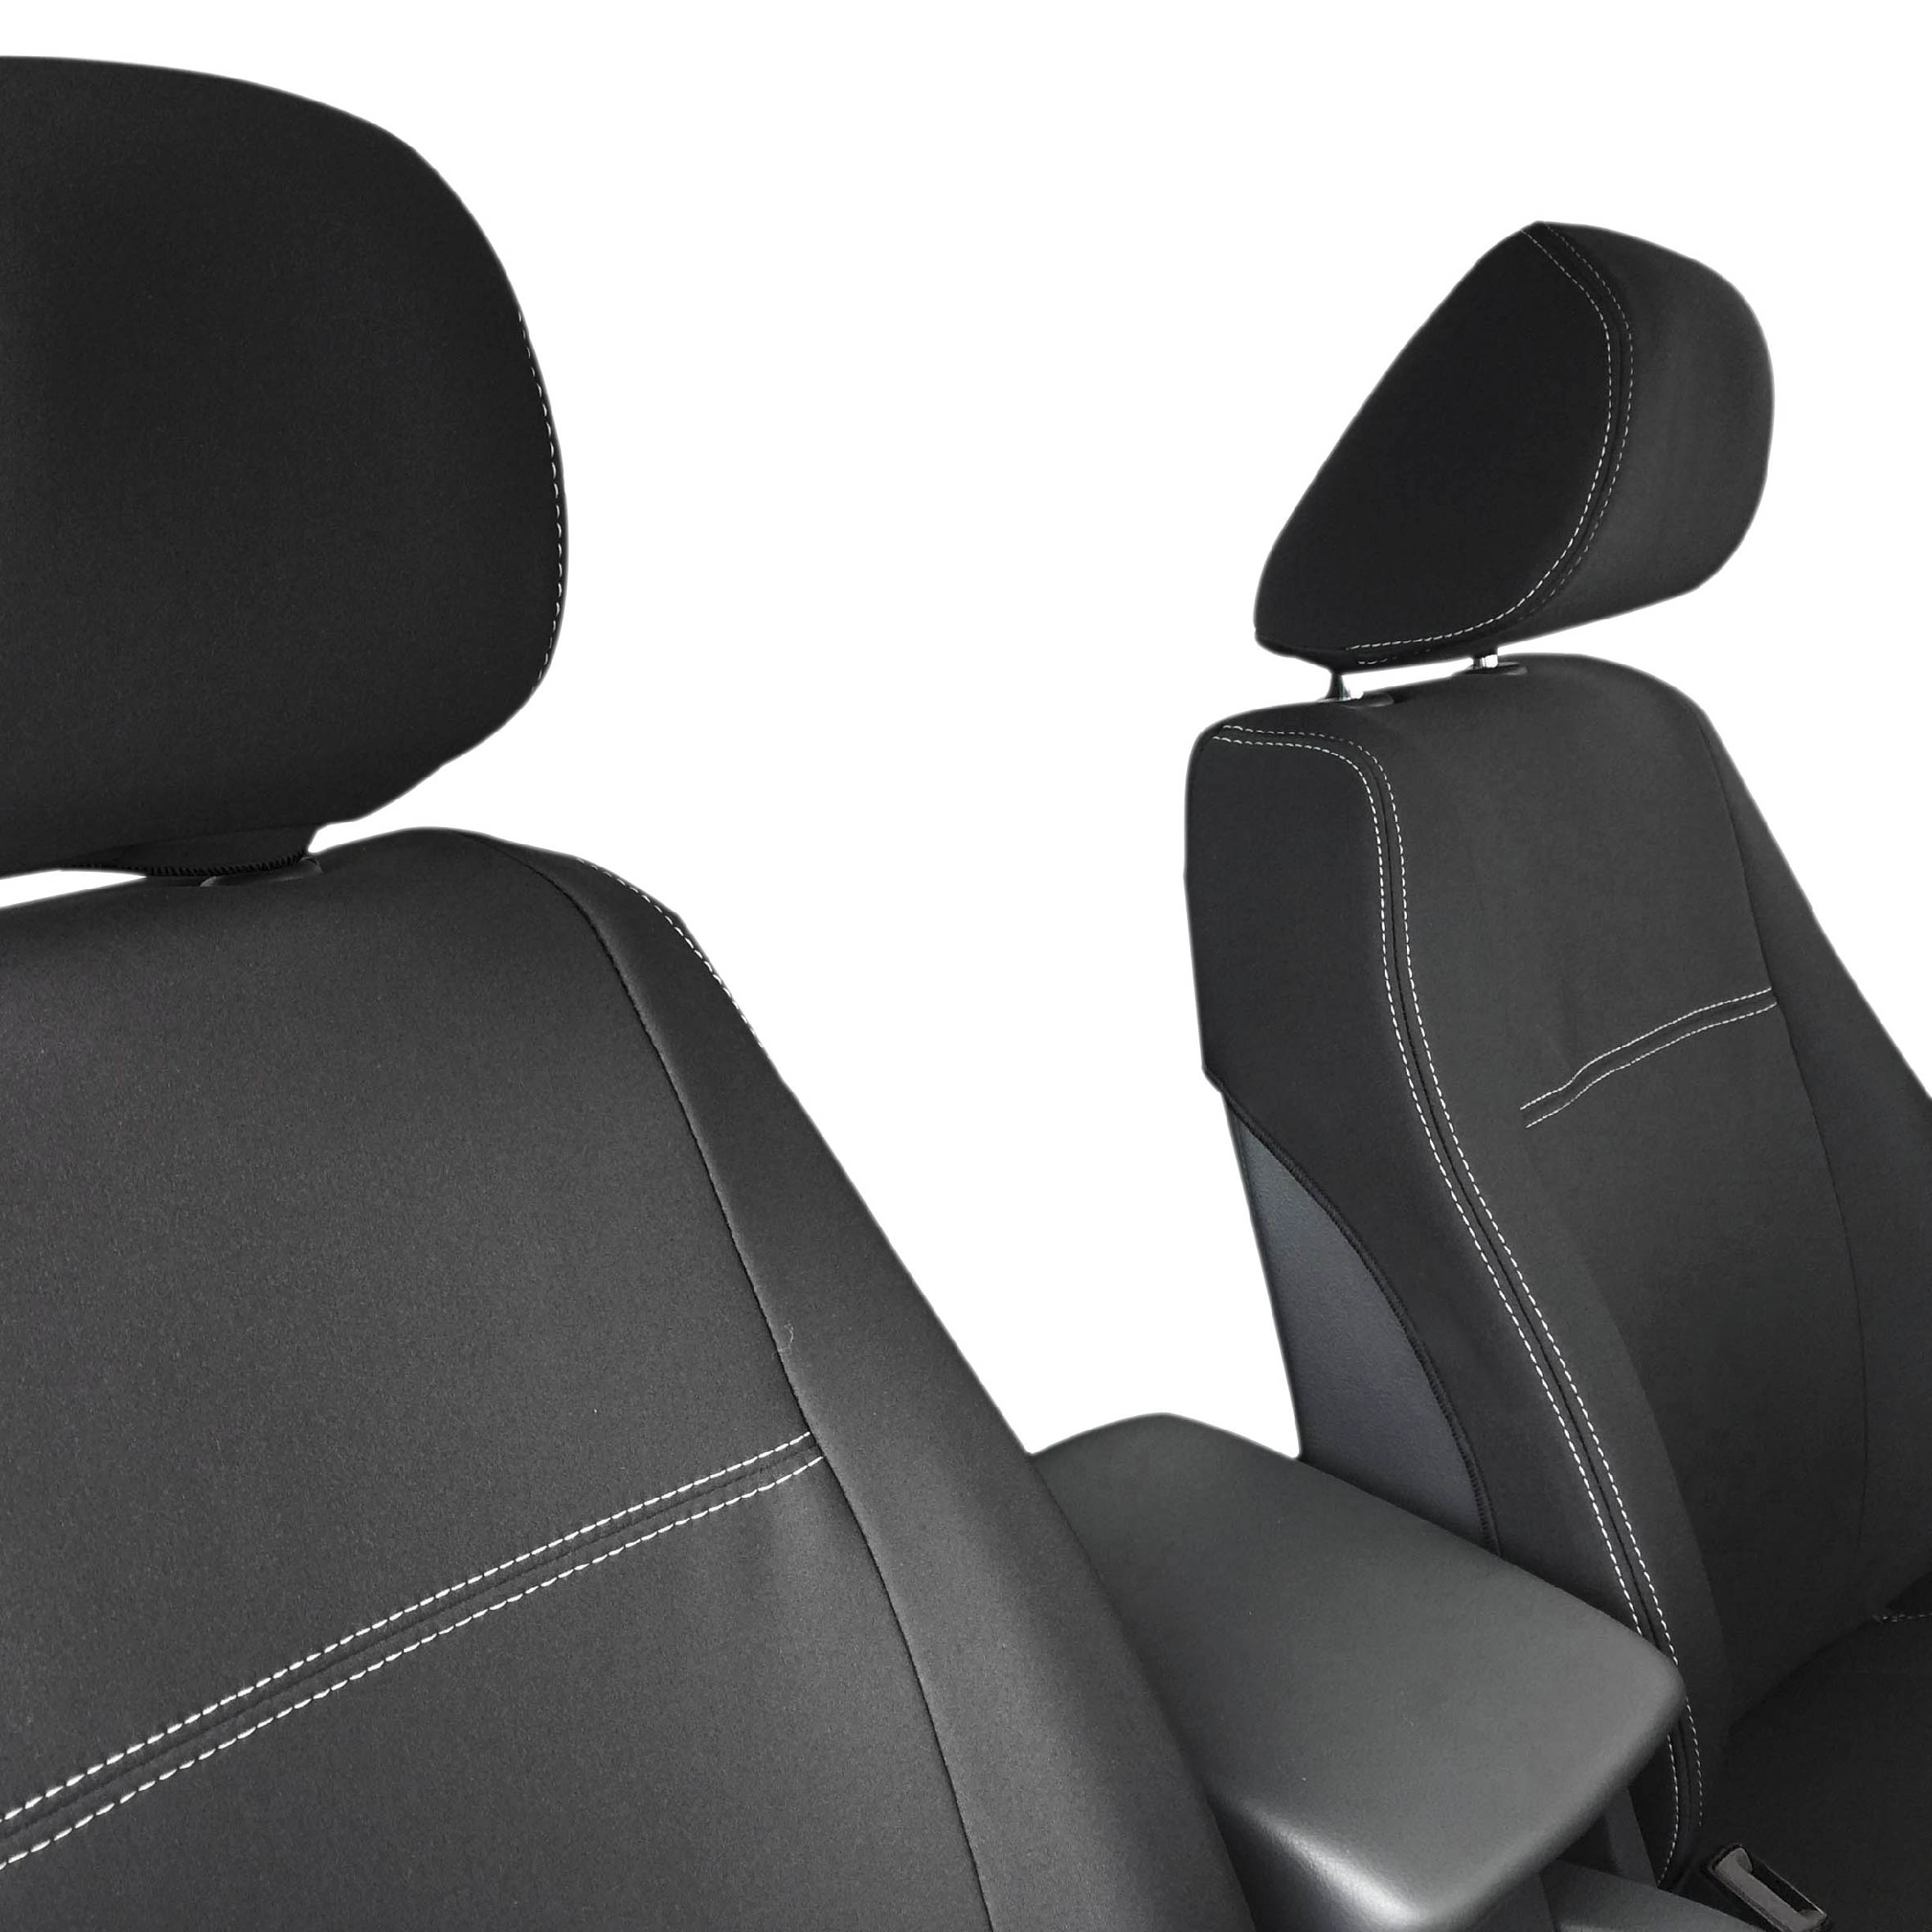 Ford Escort Car Rear Seat Protectors Covers Heavy Duty Waterproof Cover Black